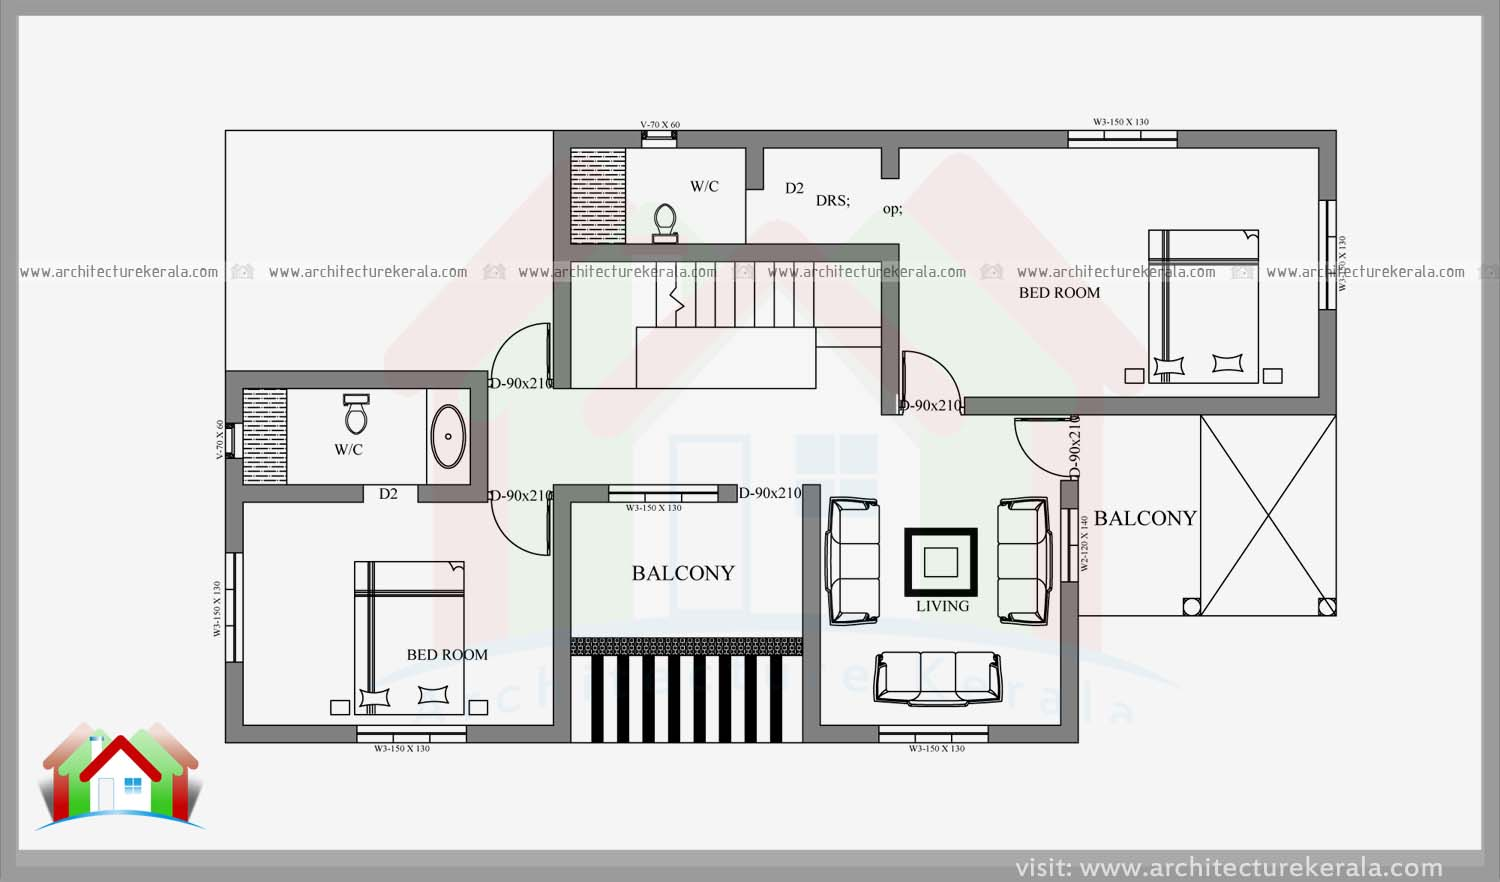 Stylish 4 bedroom small plot home design with free plan for Home plot plan